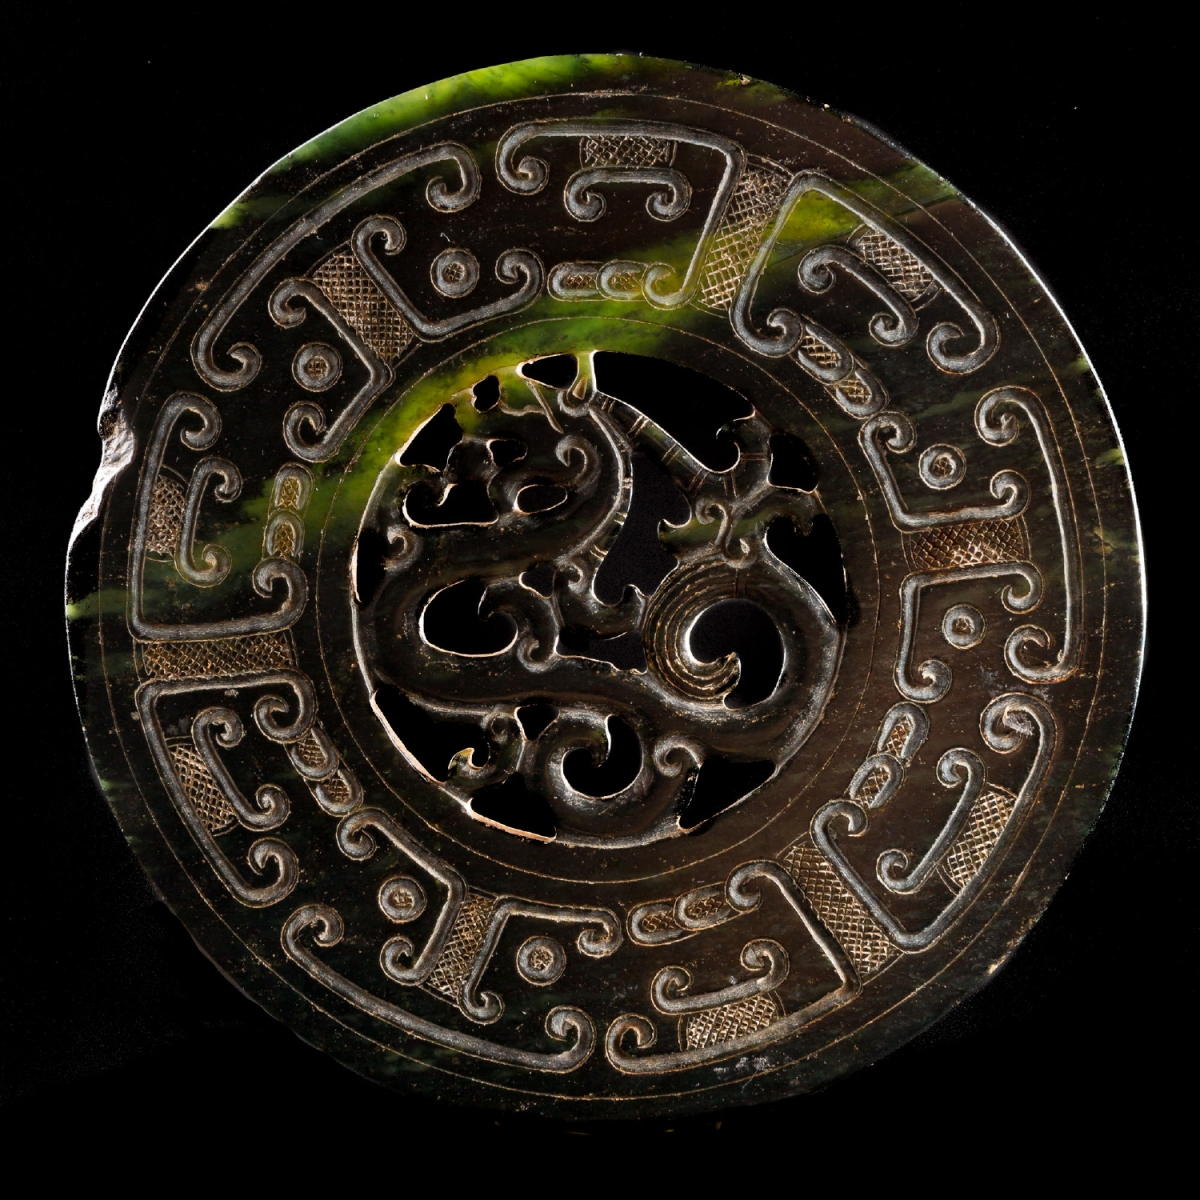 Photo of bi-disc-jade-nephrite-chinese-galerie-golconda-specialist-archeology-museum-quality